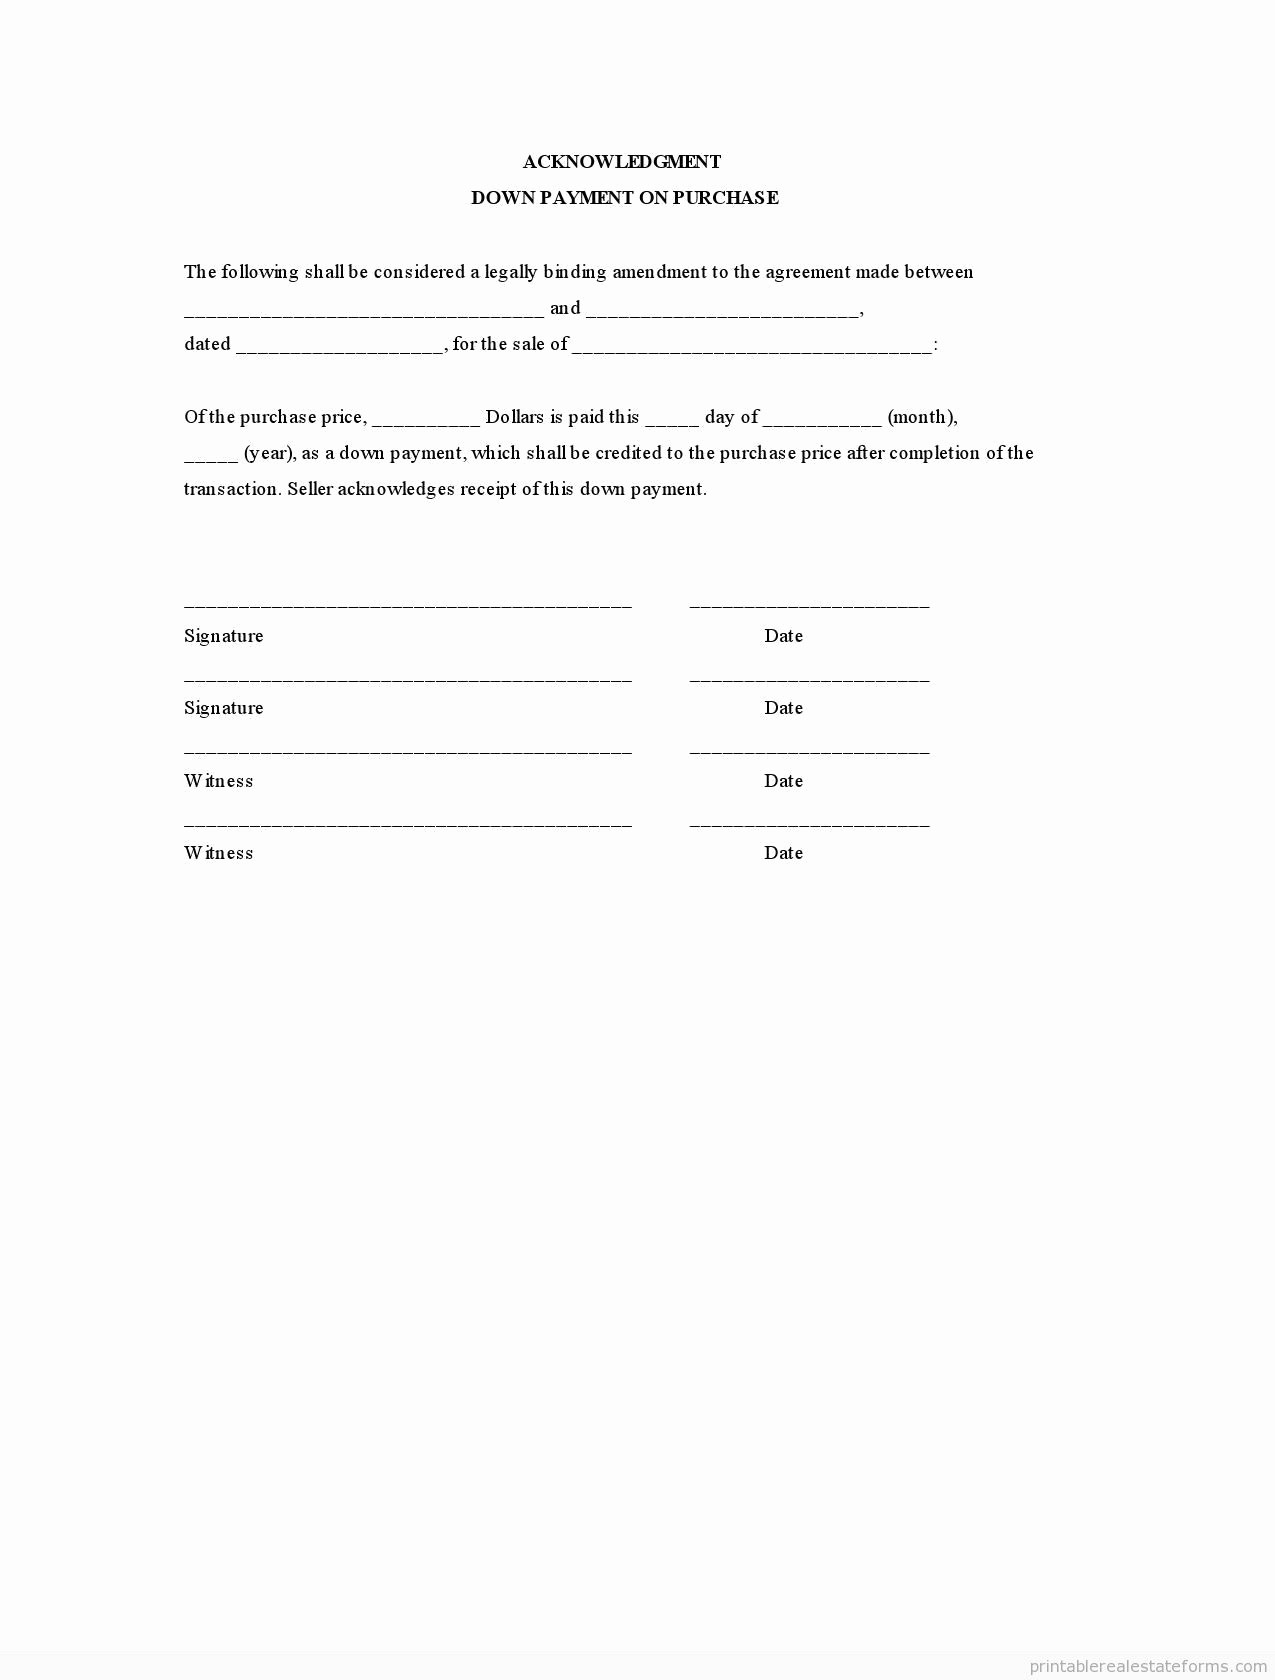 Bill Of Sale Payment Agreement Fresh Sample Printable Acknowledgment Down Payment On Purchase